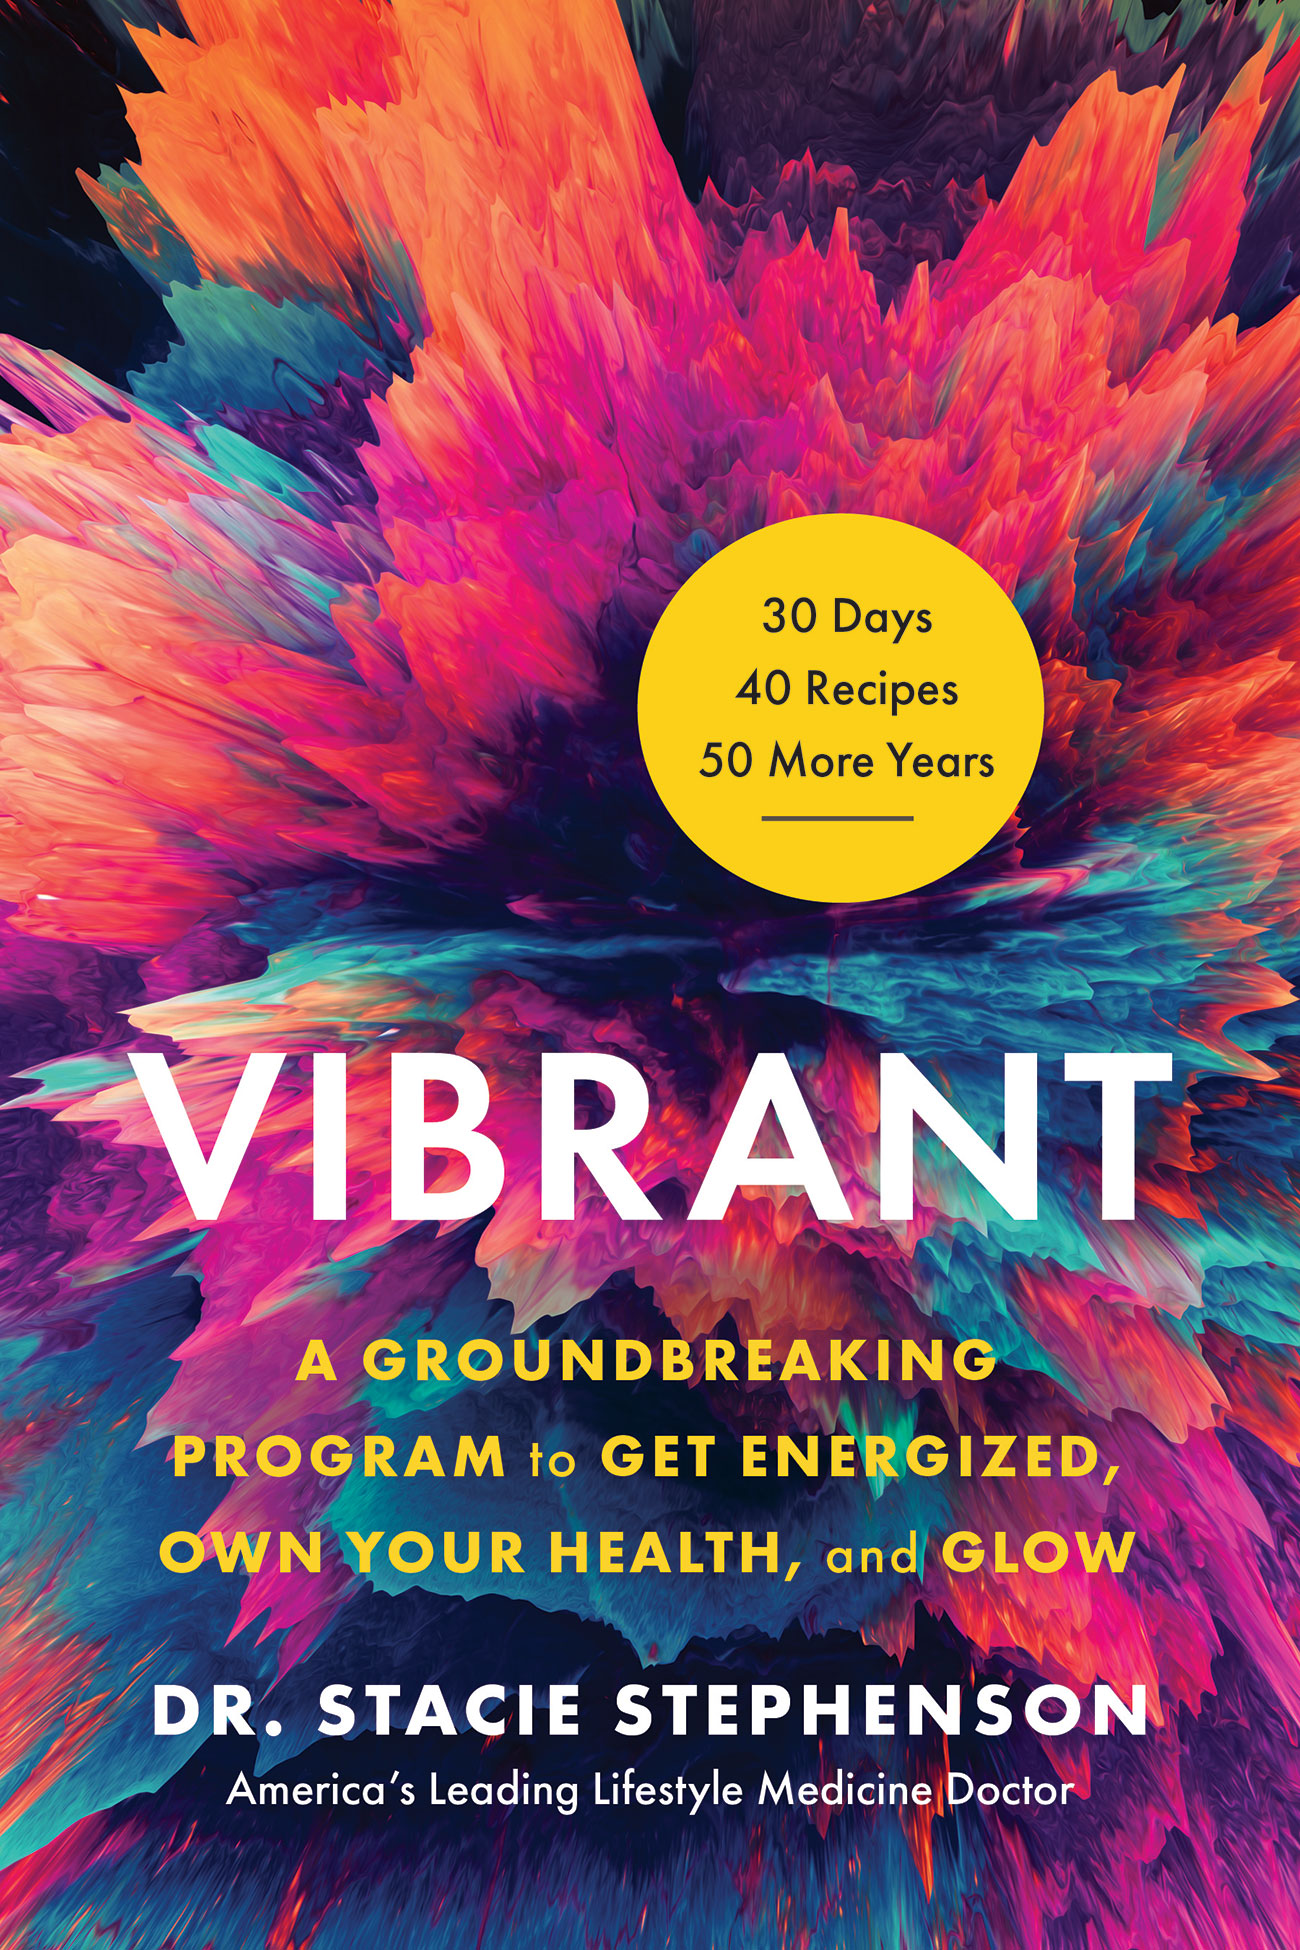 Vibrant: A Groundbreaking Program to Get Energized, Own Your Health, and Glow